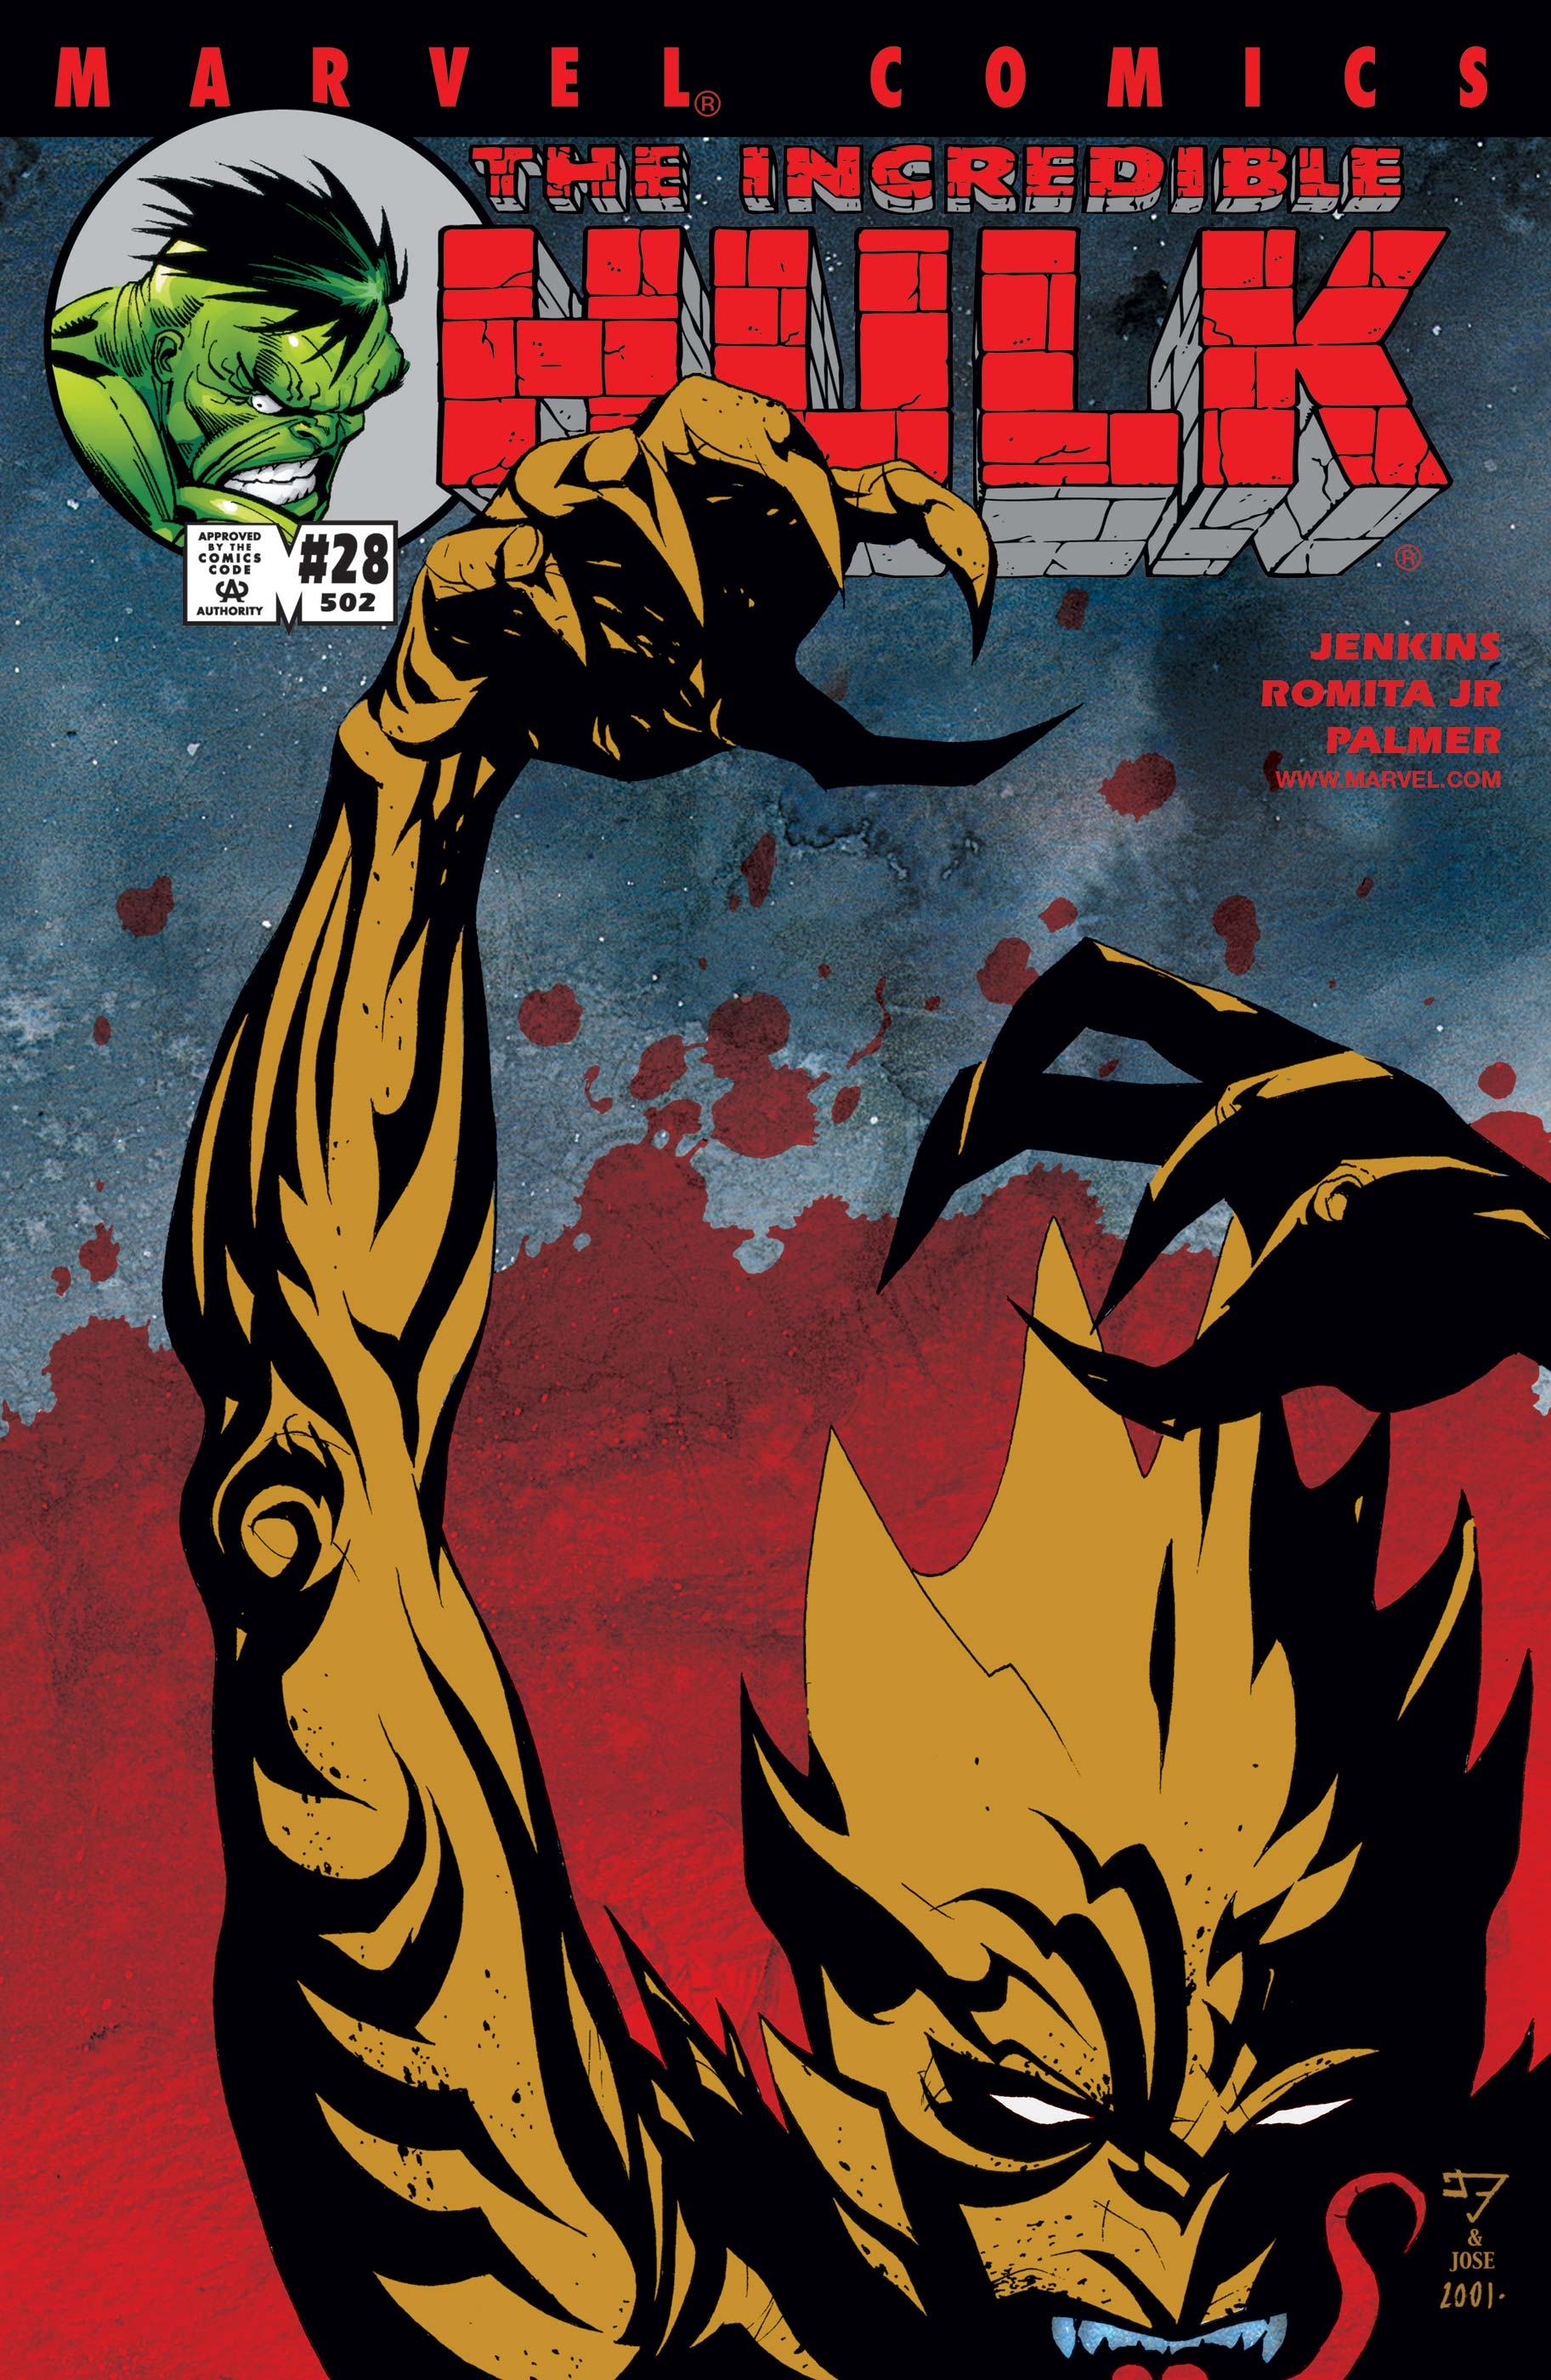 Incredible Hulk (1999) #28